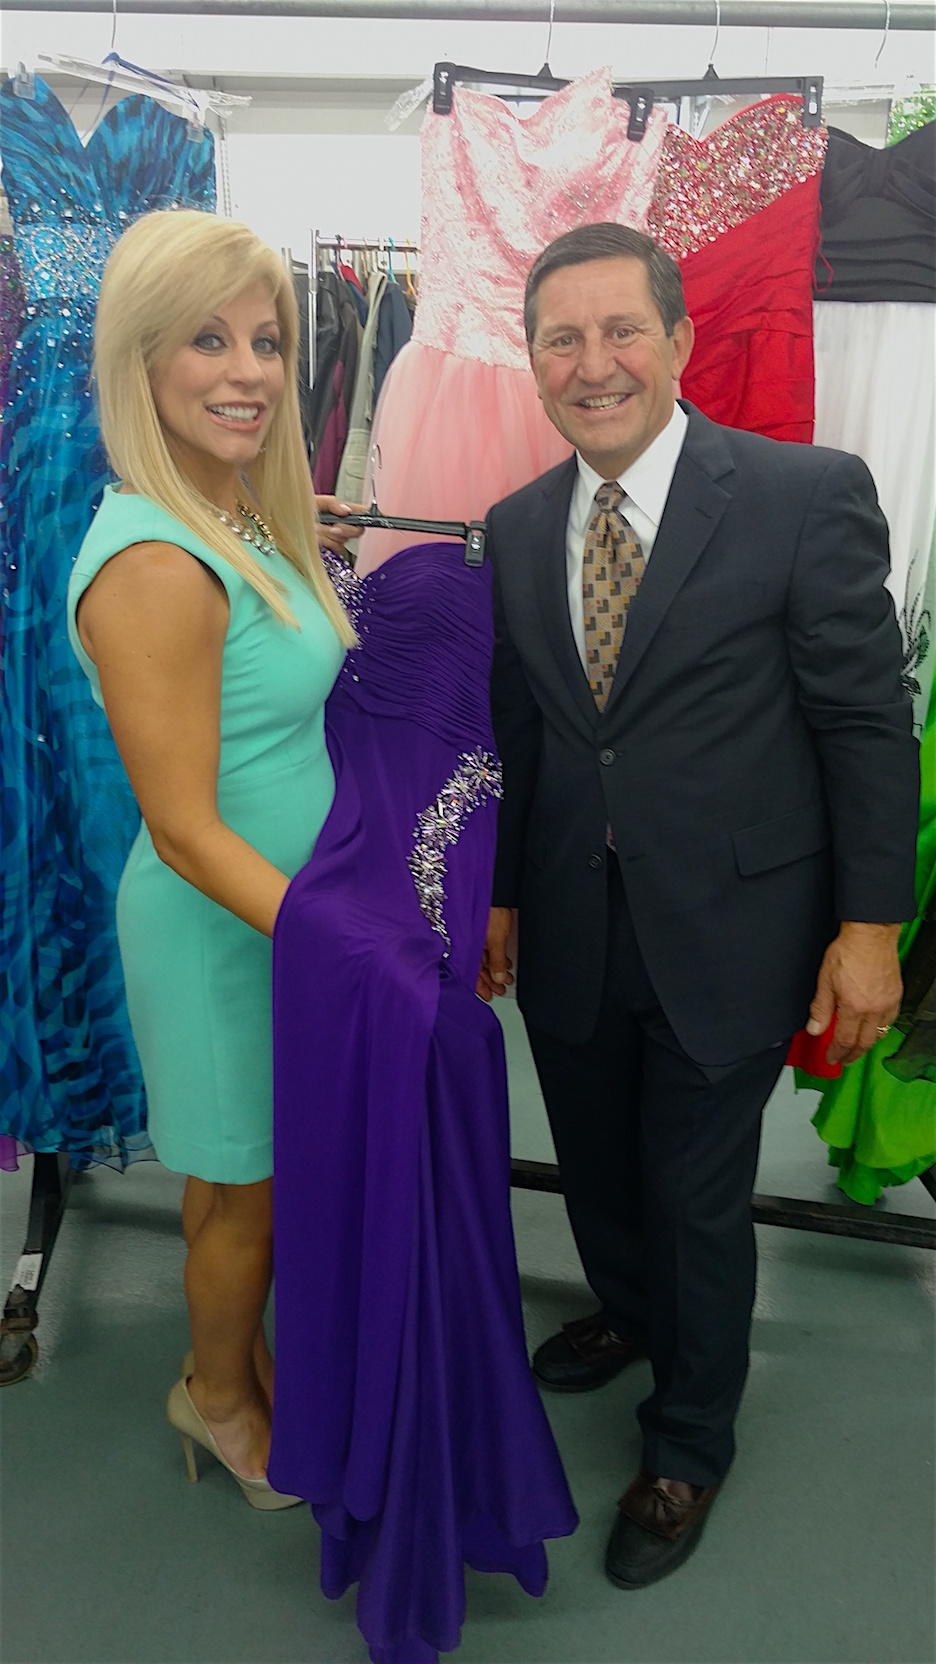 Gowns For Prom In Need Of Dresses Shoes Volunteers